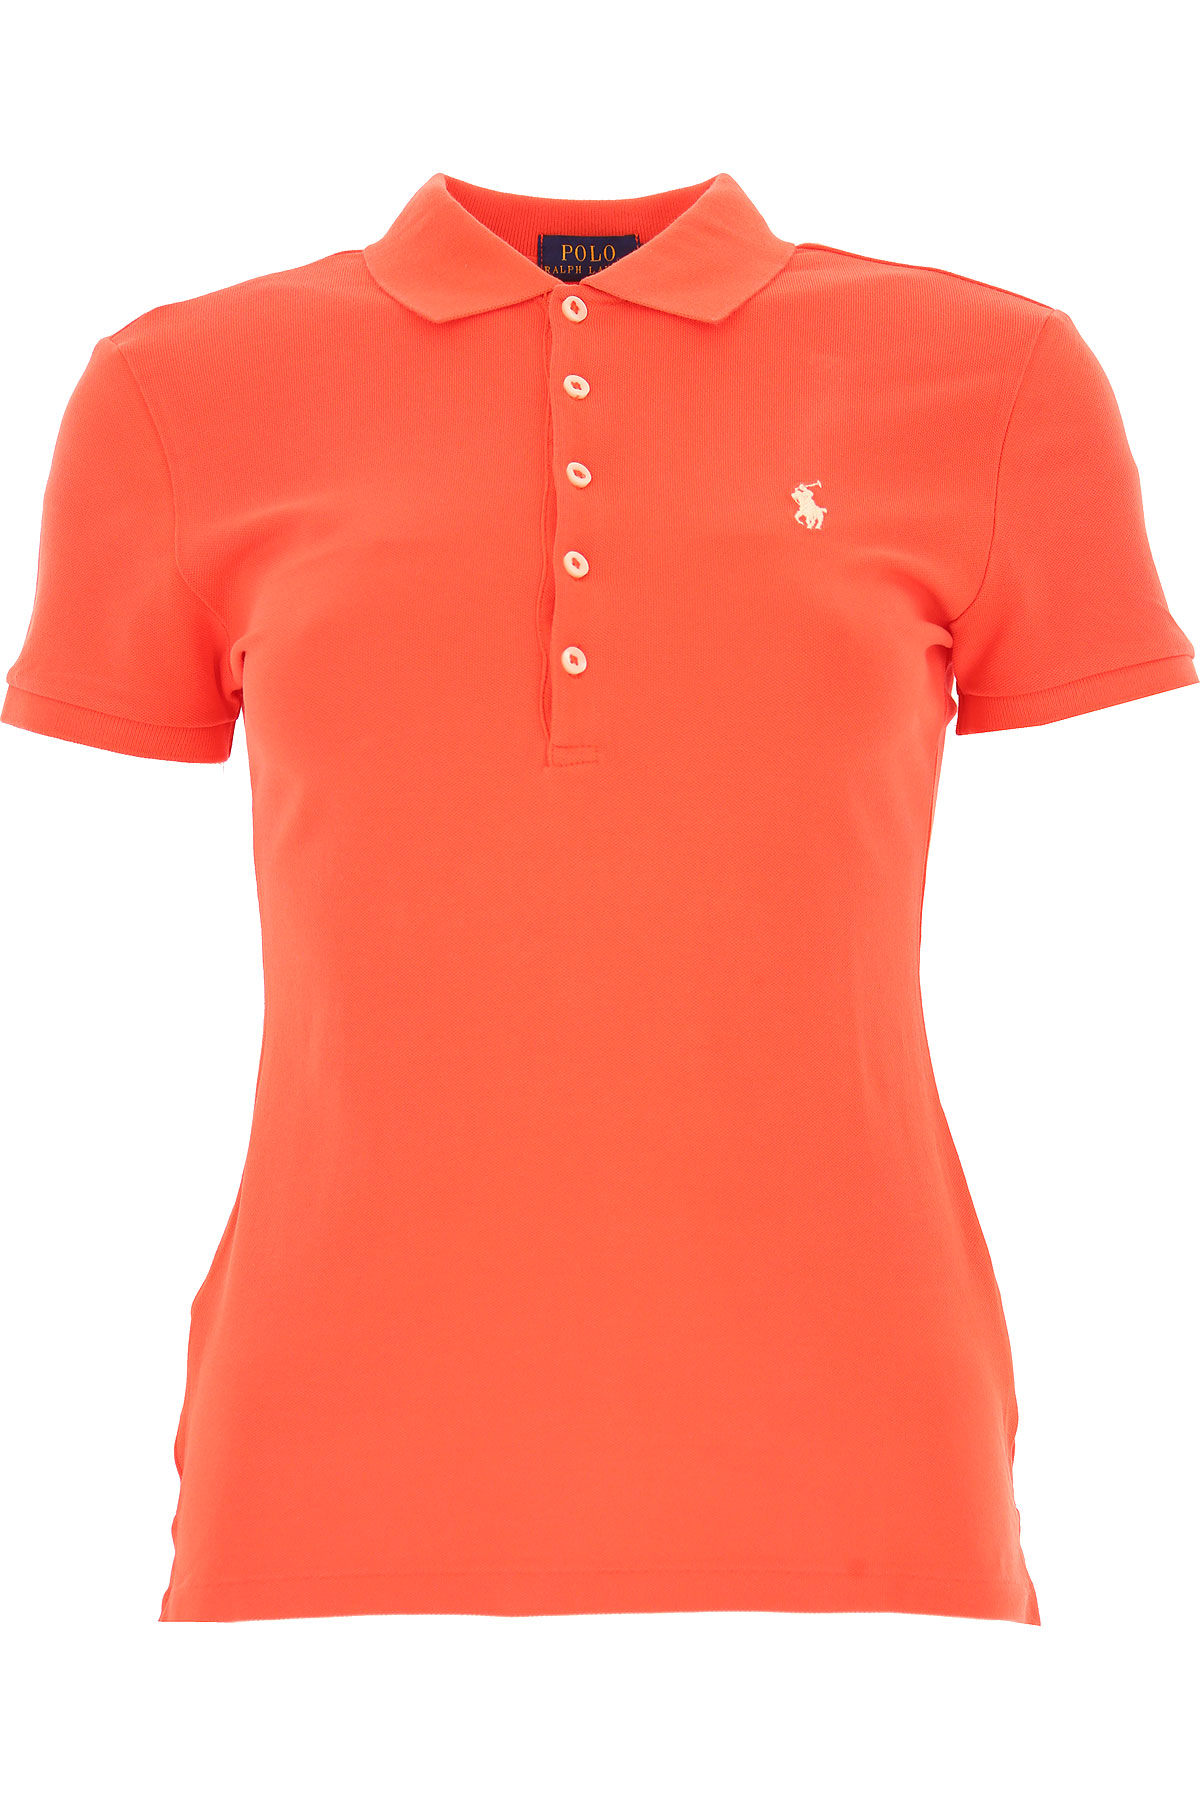 Image of Ralph Lauren Polo Shirt for Women On Sale, Red, Cotton, 2017, 2 4 6